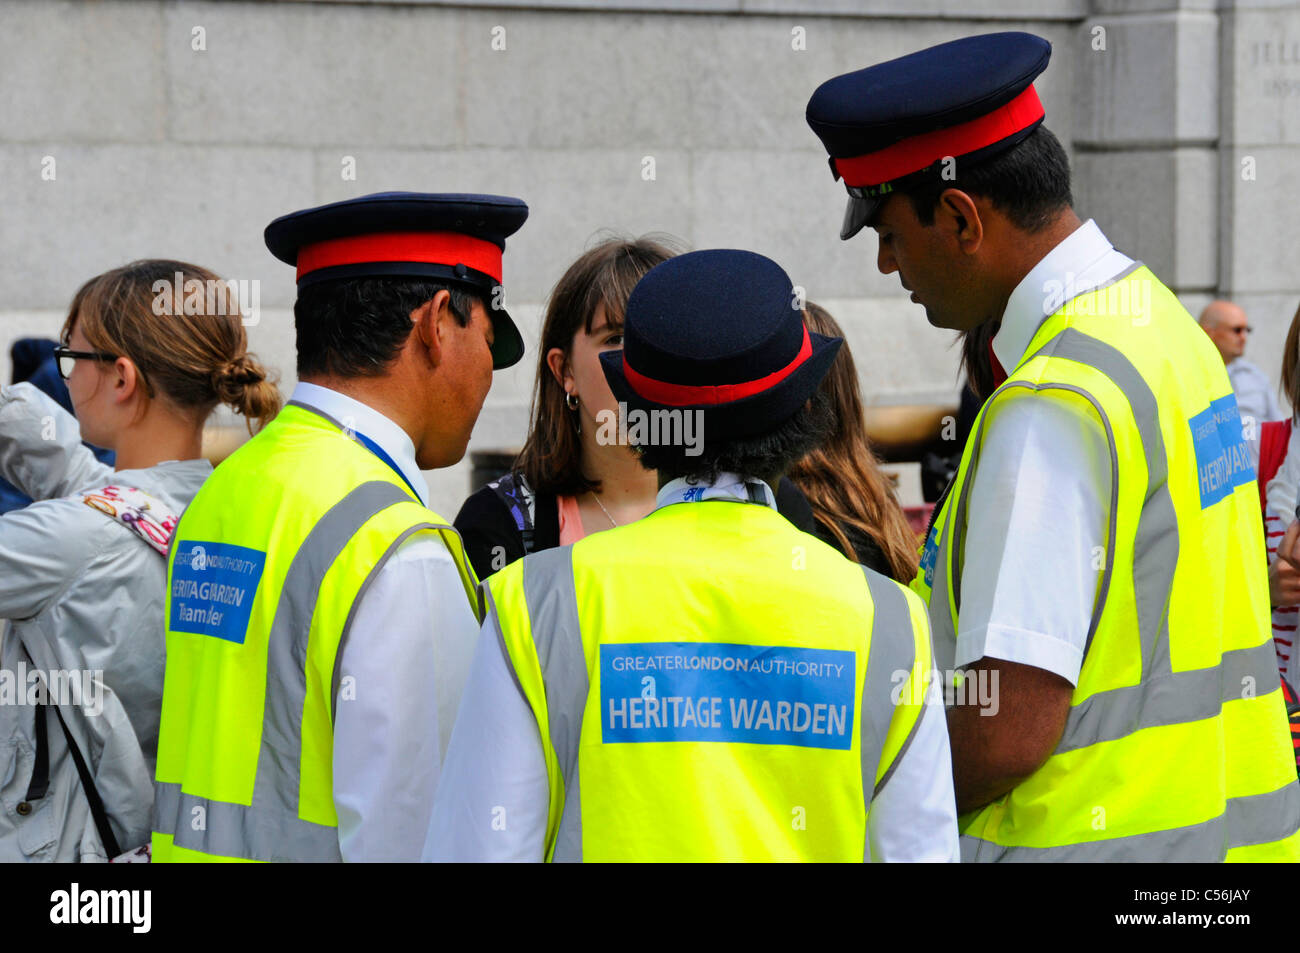 Three Heritage Wardens assisting visitors in London - Stock Image